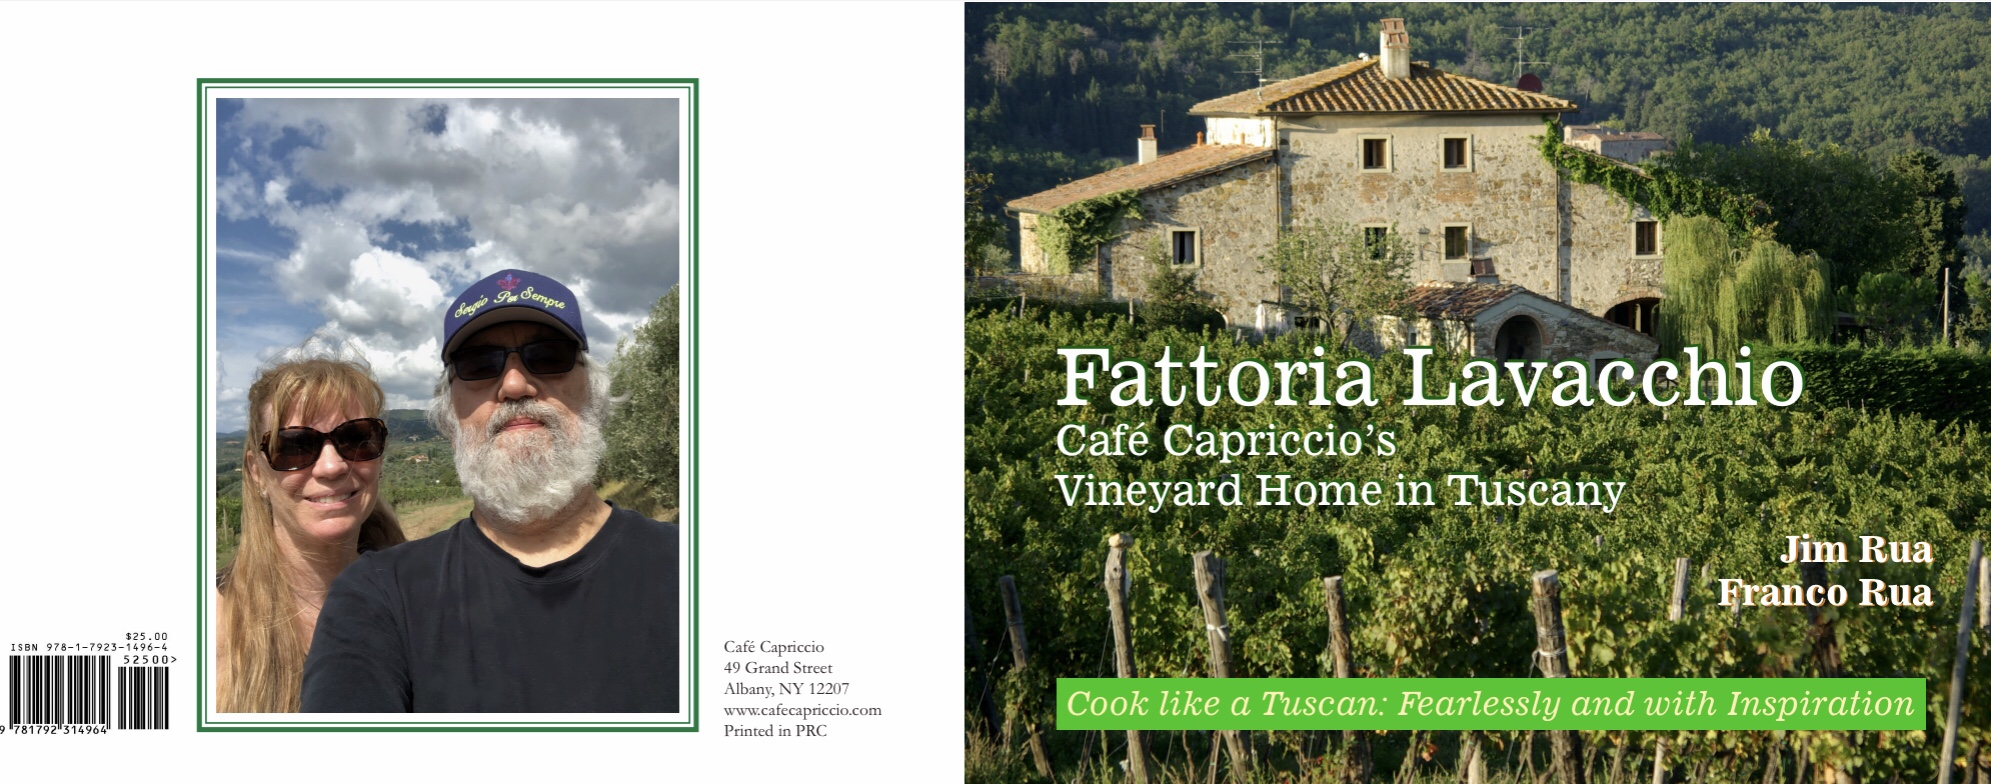 Franco and I have a new book now at the printer that is all about our fabulous vineyard home in Chianti, Fattoria Lavacchio. In it you'll find glorious photography, information about the magic of Tuscany, and you'll meet our friends who run the vineyard. We'll also show you how to cook like a Tuscan, fearlessly and with Inspiration. Enjoy dozens of Tuscan-food photos and our new innovative approach to the writing of recipes—think of us as counterrevolutionary food writers whose approach to cooking instruction is wholistic, not rudimentary. You'll get it right away and it will vitalize your cooking spirit. Pictured above, the front and back covers. Available October 1. 🙏. Jim Rua